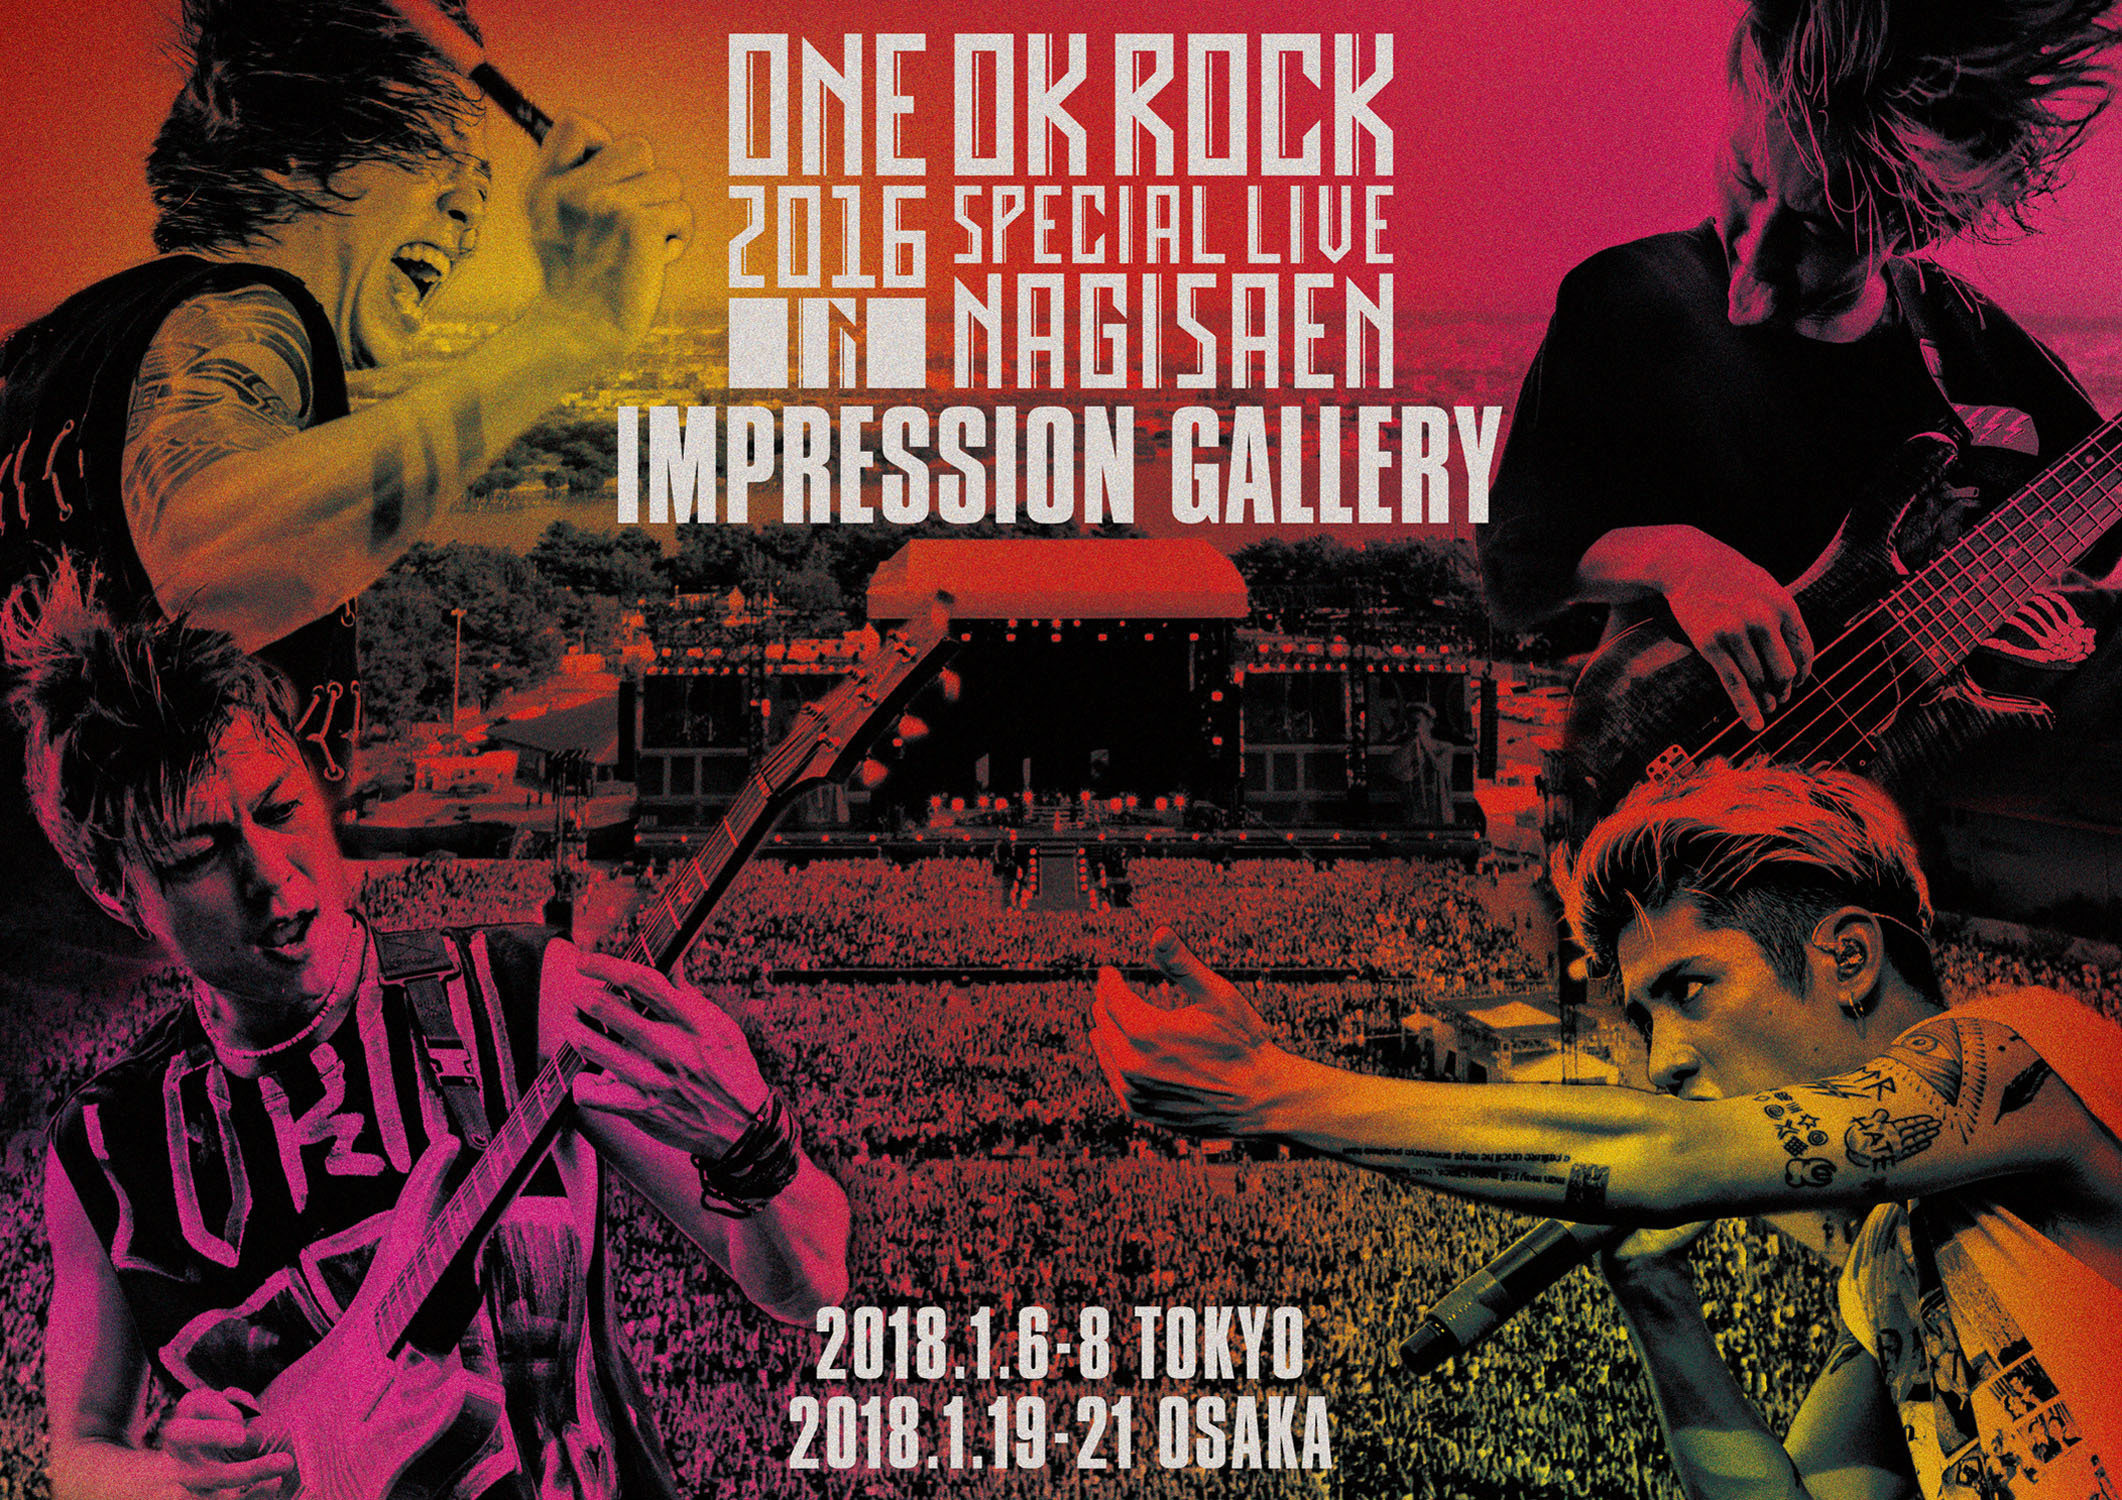 ONE OK ROCK 2016 SPECIAL LIVE IN NAGISAEN IMPRESSION GALLERY